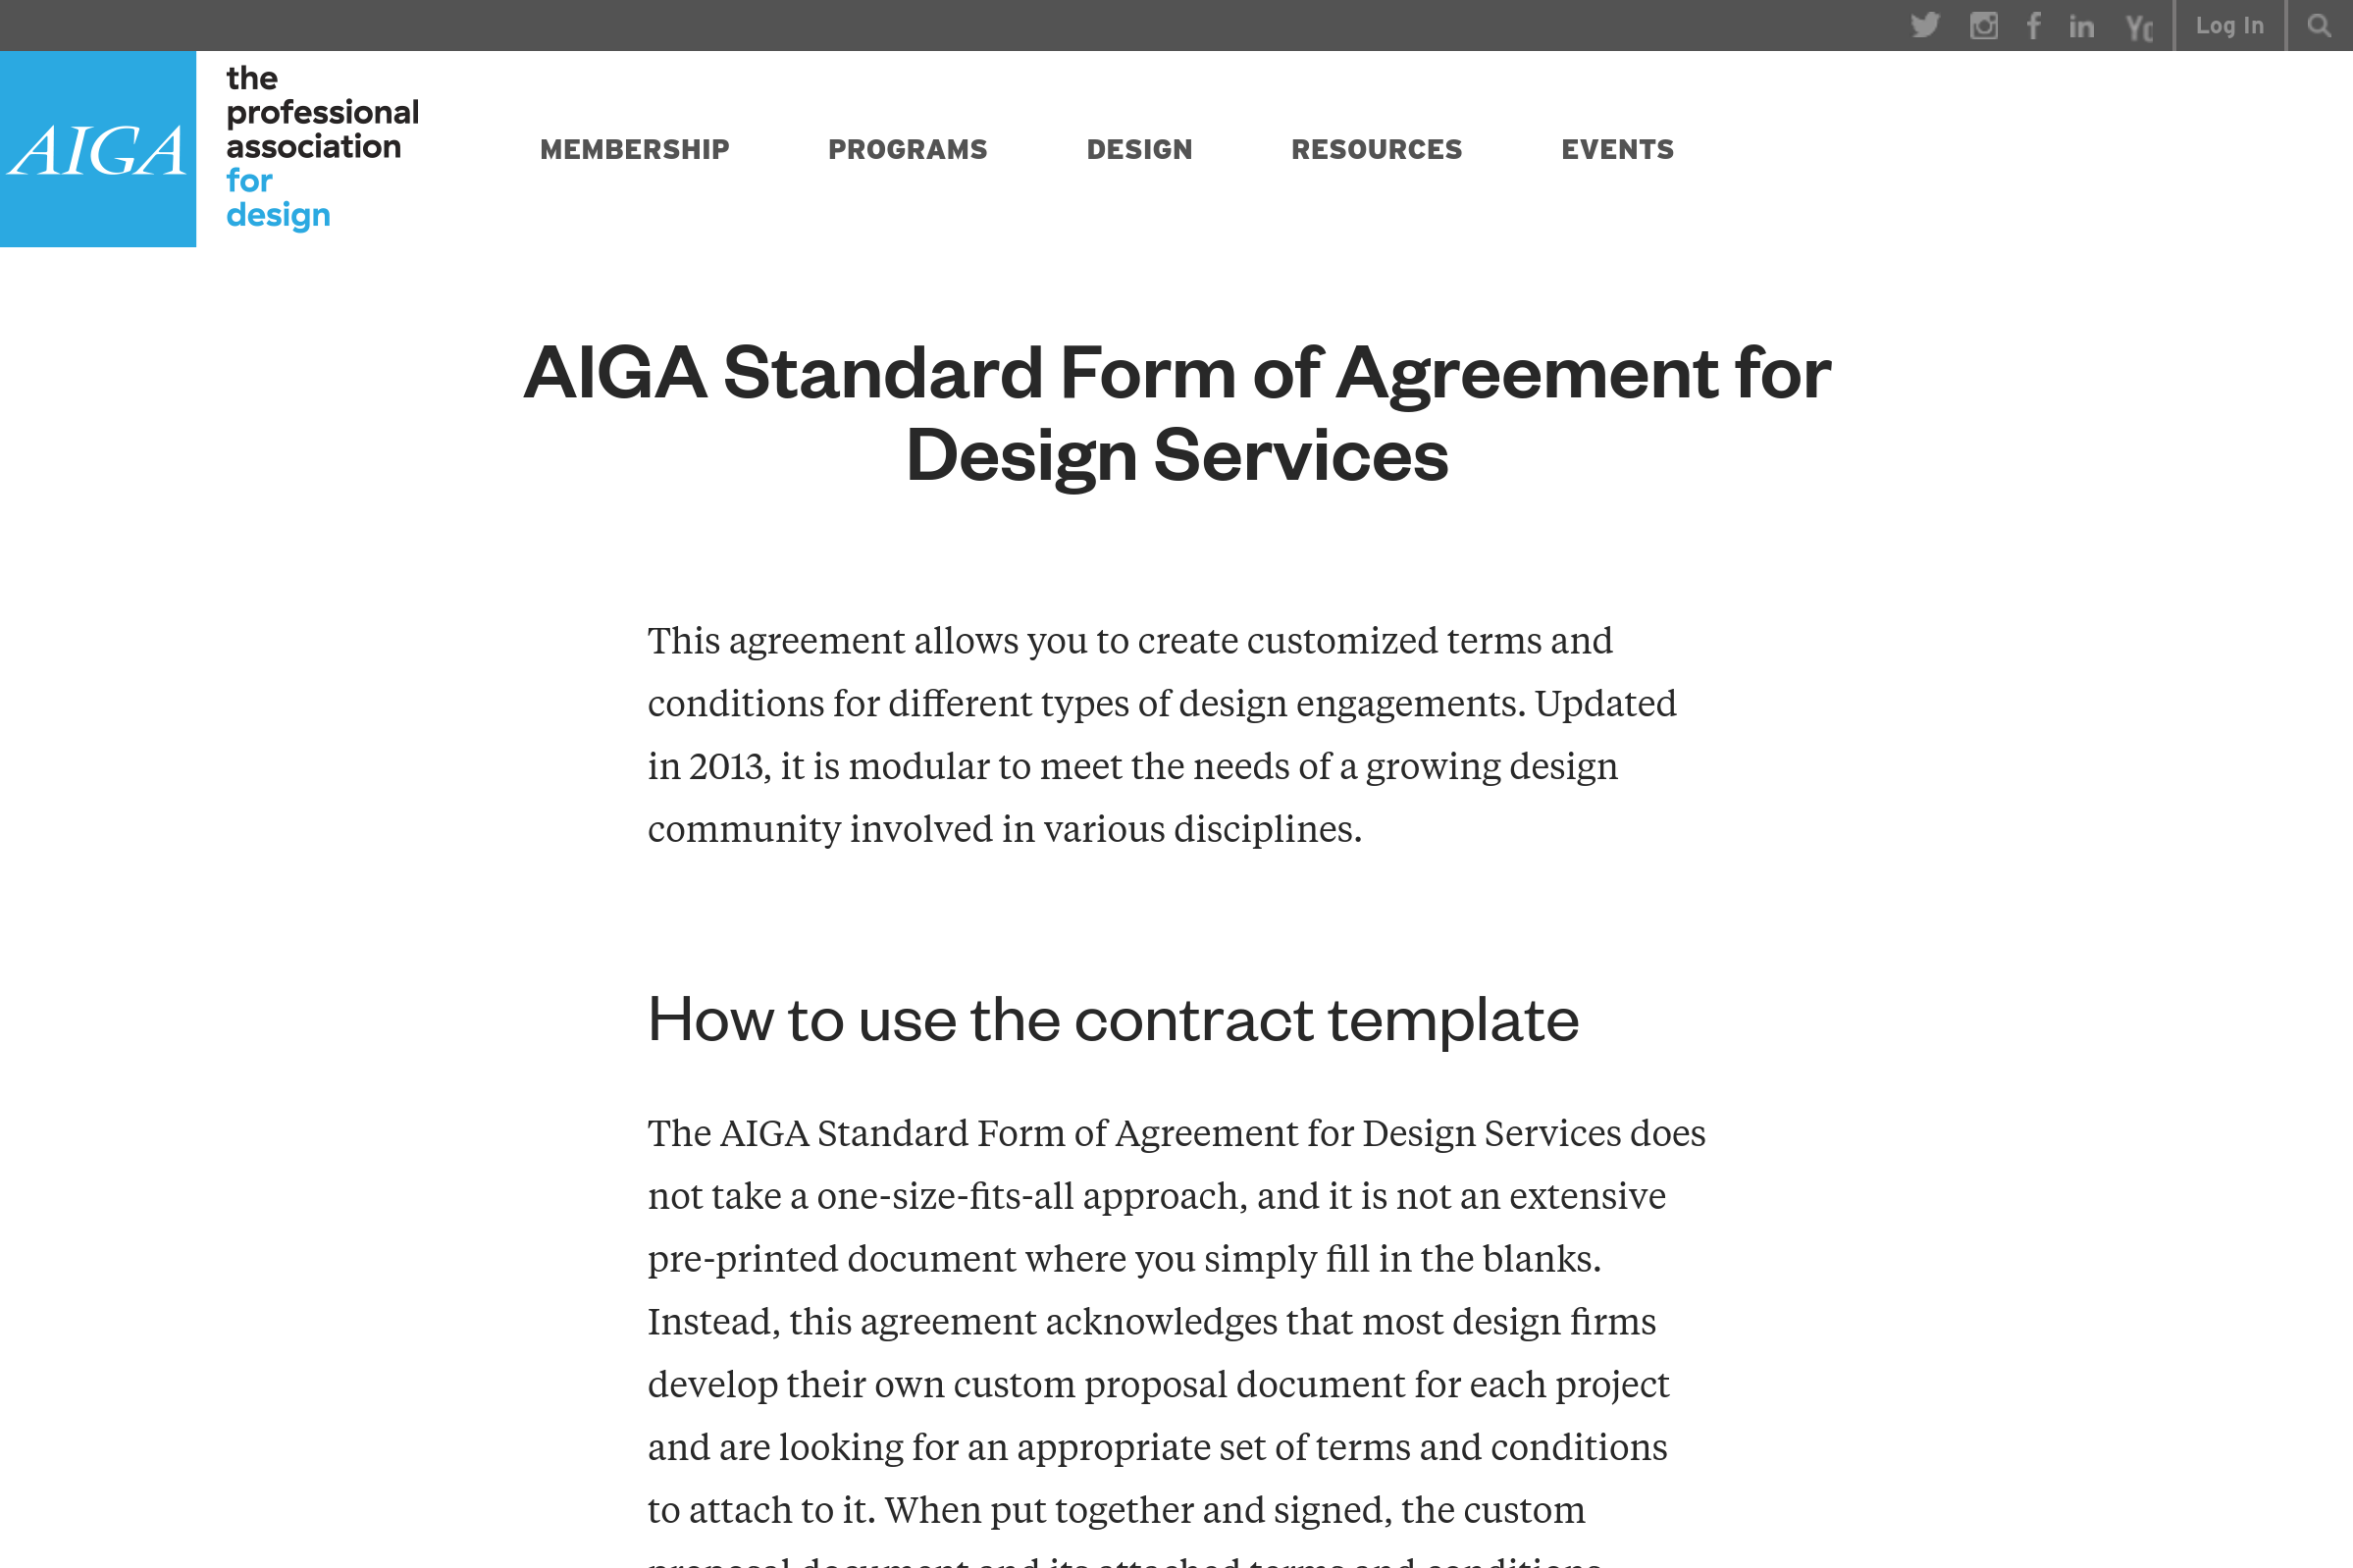 Freelance Web Developer Contract Template from AIGA